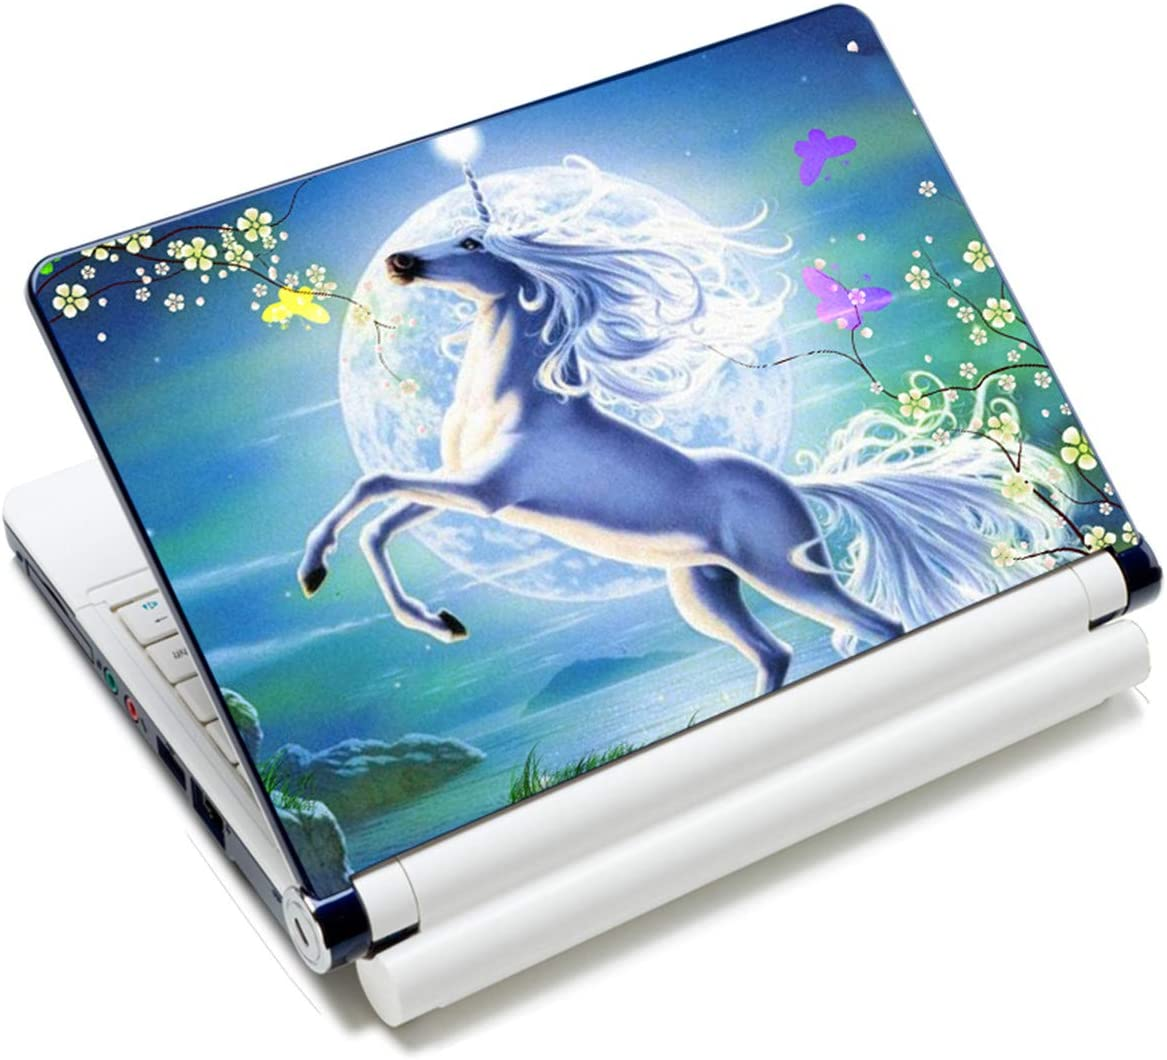 Laptop Stickers Decal,12 13 14 15 15.6 inches Netbook Laptop Skin Sticker Reusable Protector Cover Case for Toshiba Hp Samsung Dell Apple Acer Leonovo Sony Asus Laptop Notebook (Cute Unicorn)